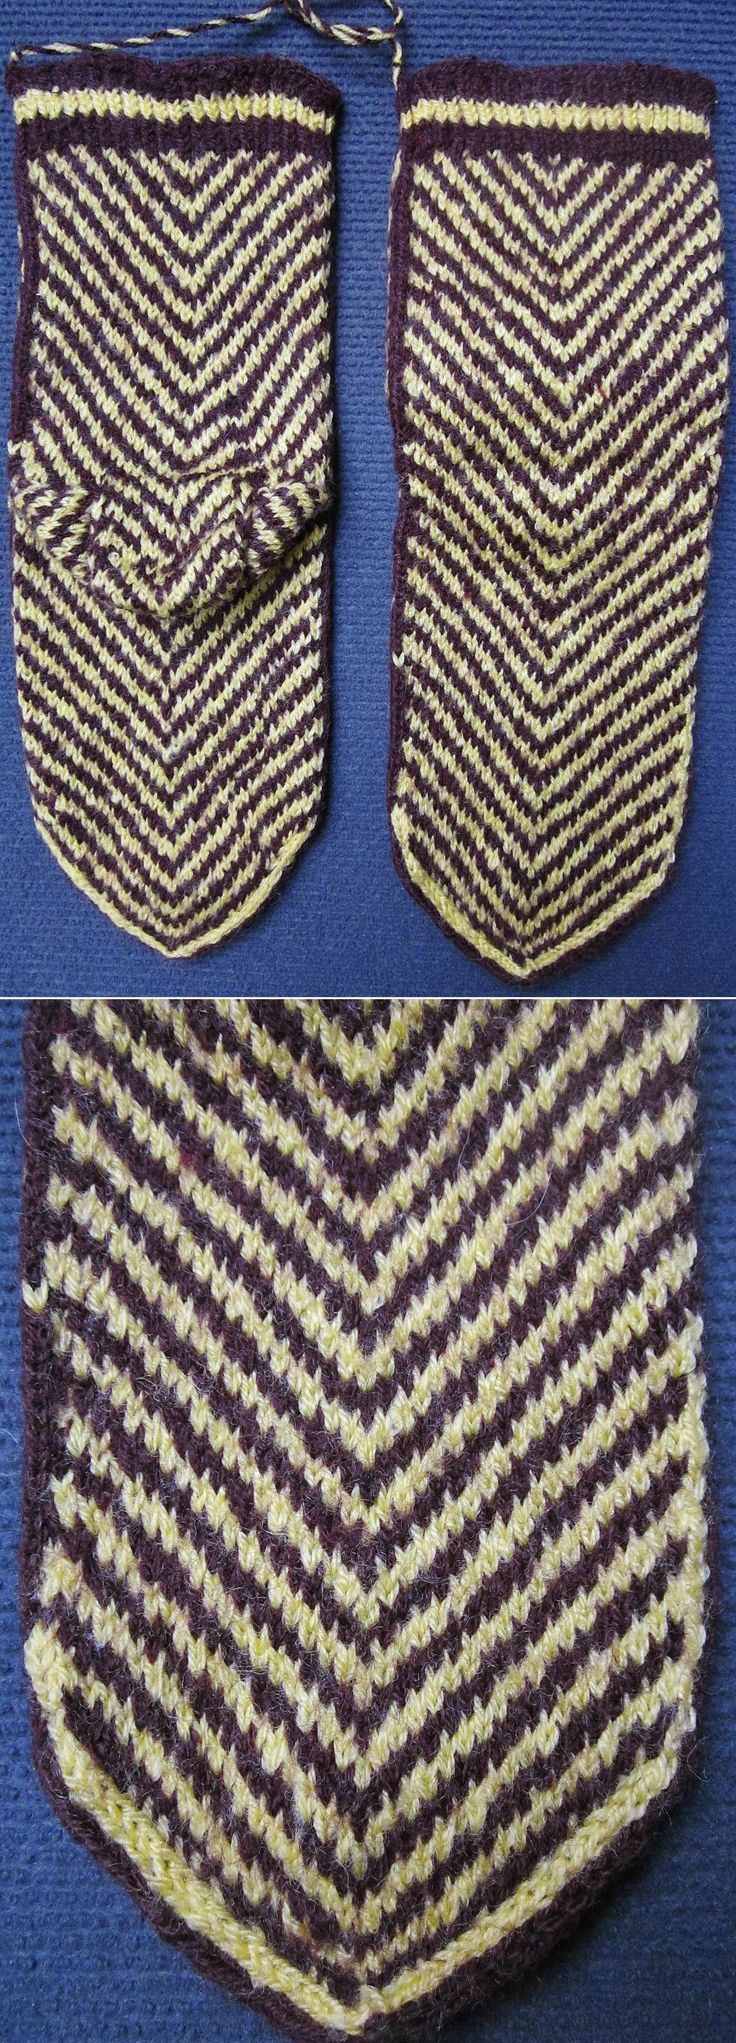 Short hand-knitted woollen stockings.  For women.  Kurdish, from the central district of the Van province (eastern Turkey).  Late 20th century.  (Inv.nr. çor025 - Kavak Costume Collection - Antwerpen/Belgium).